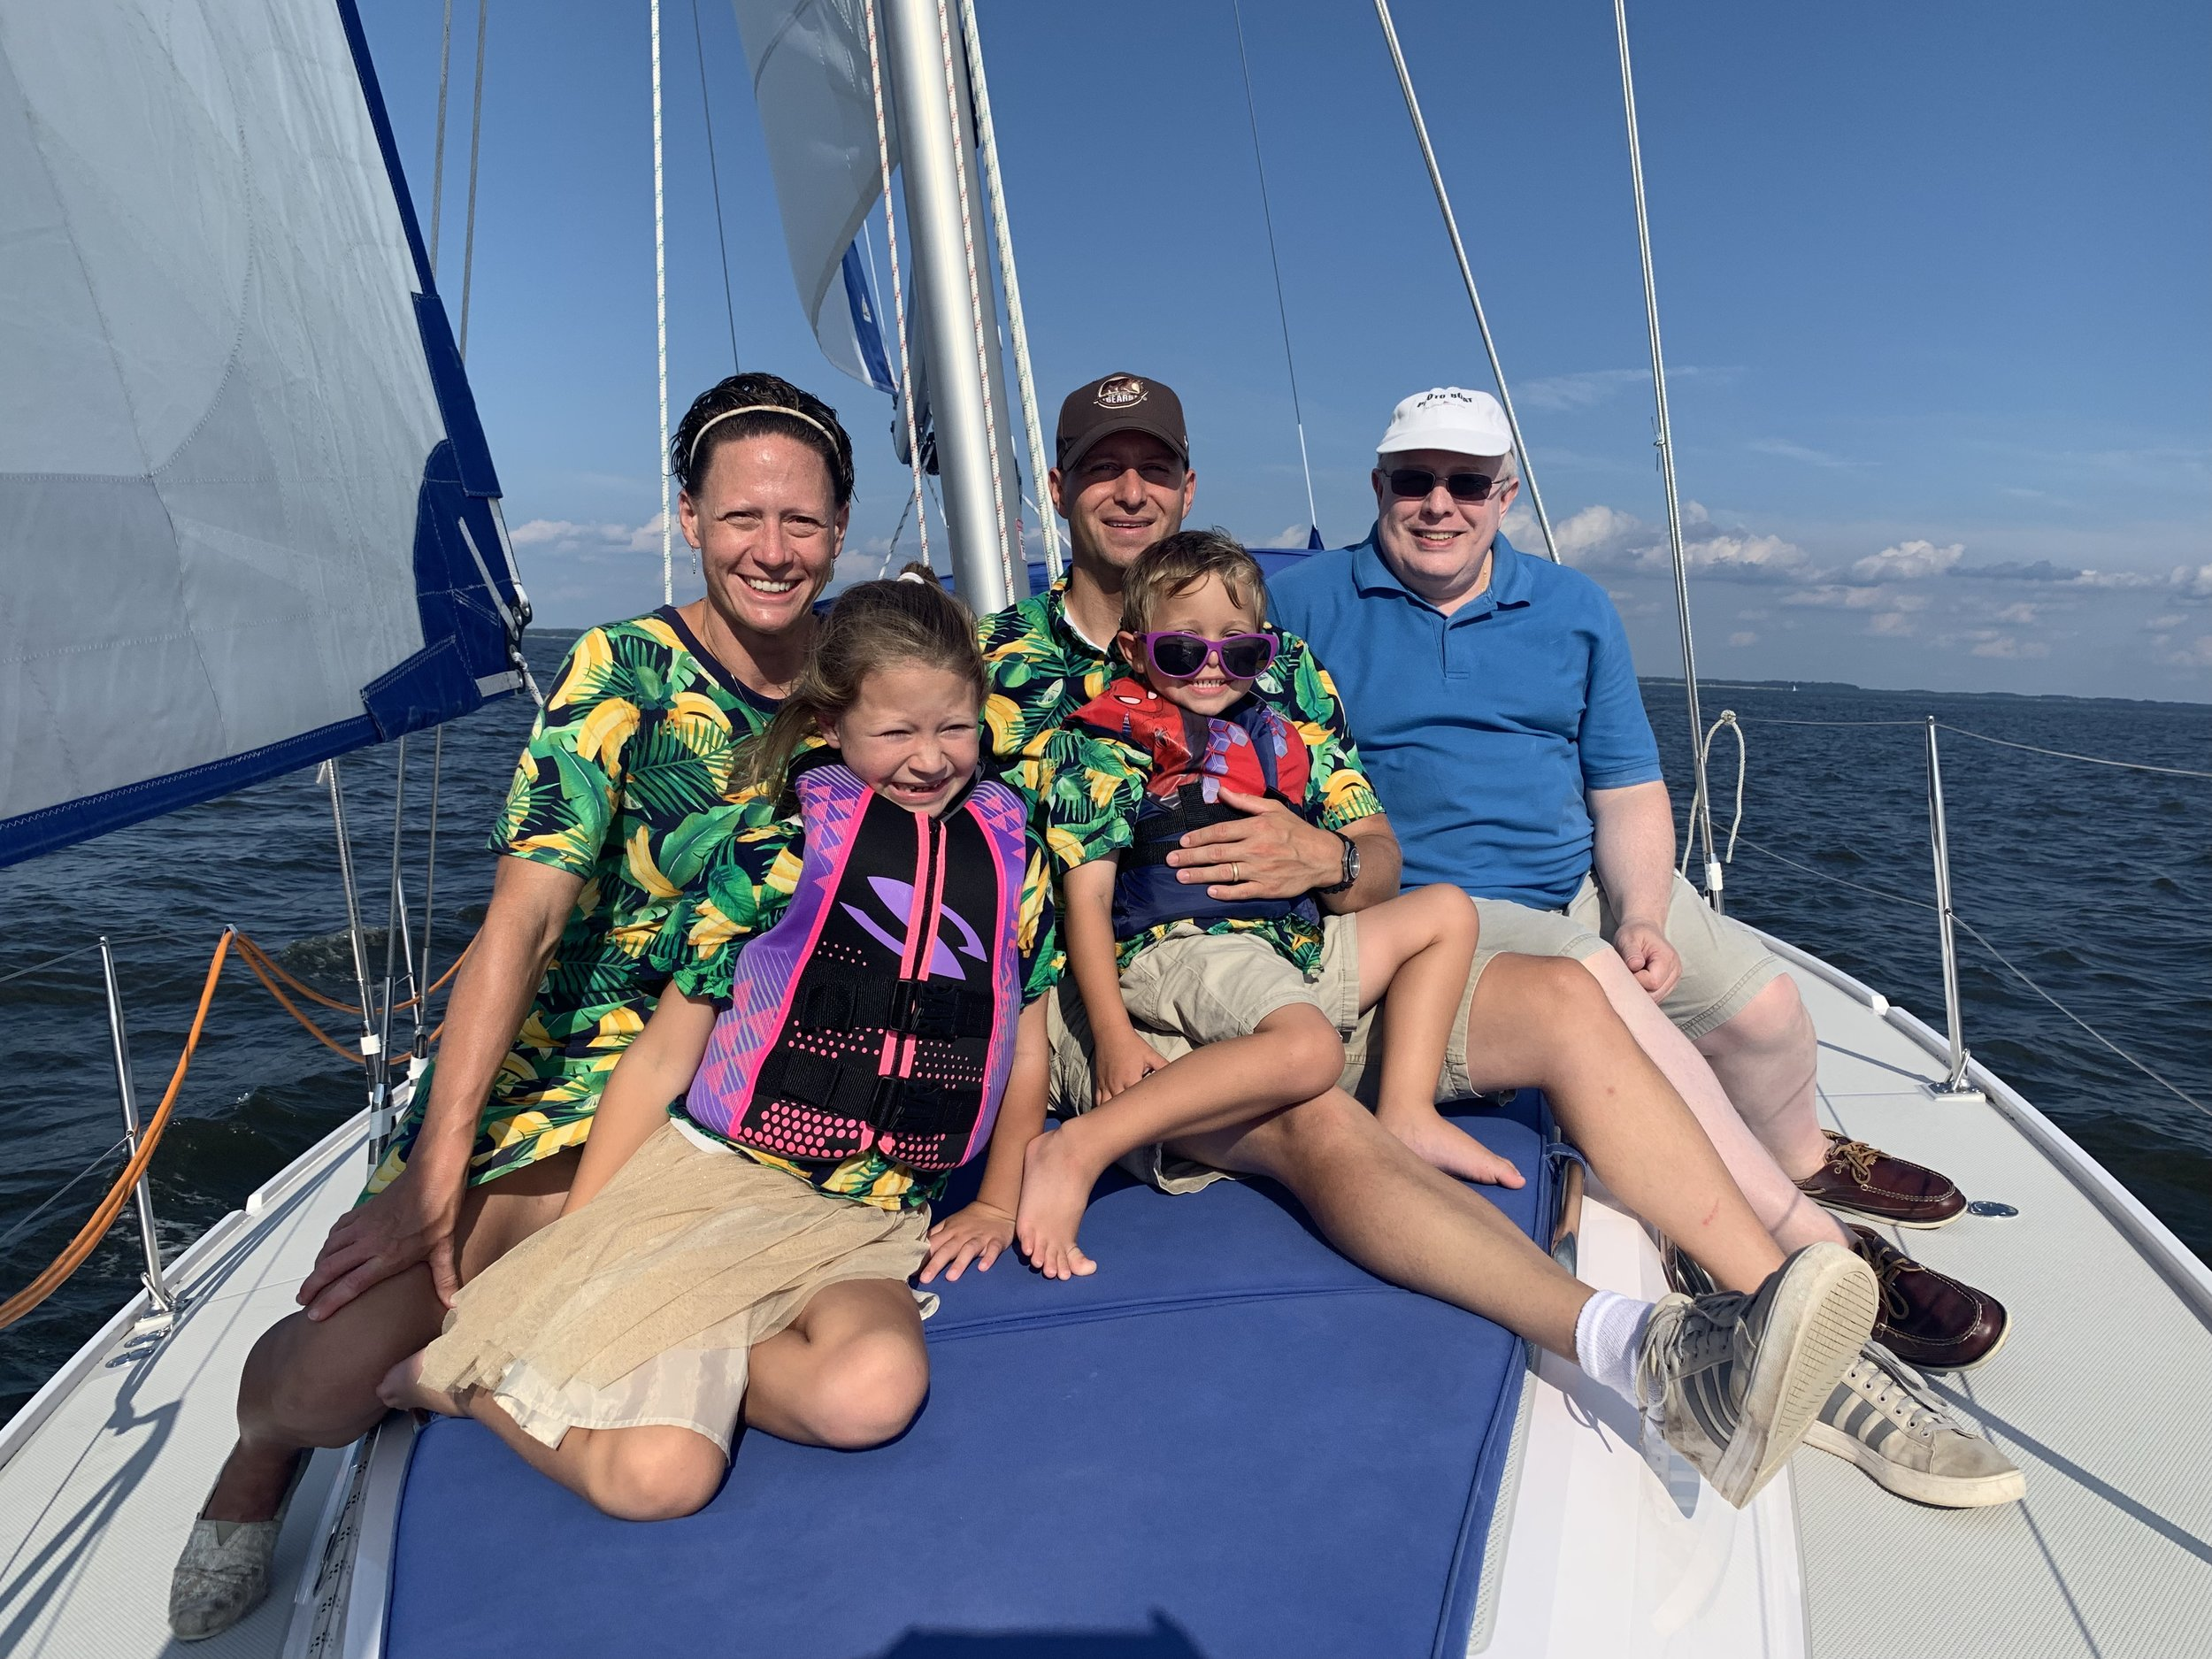 Family Sailing on Chesapeake Bay